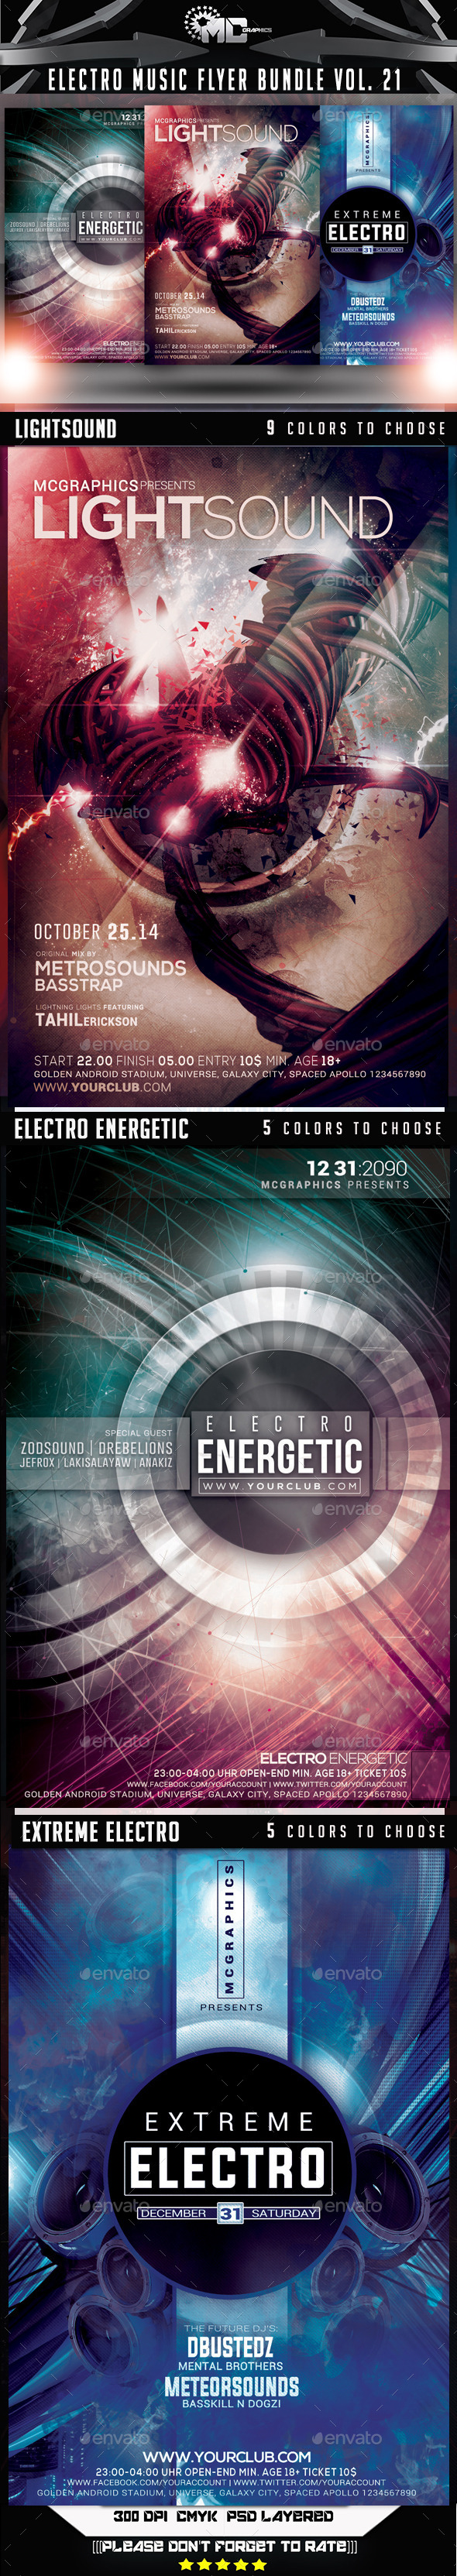 Electro Music Flyer Bundle Vol. 21 - Events Flyers